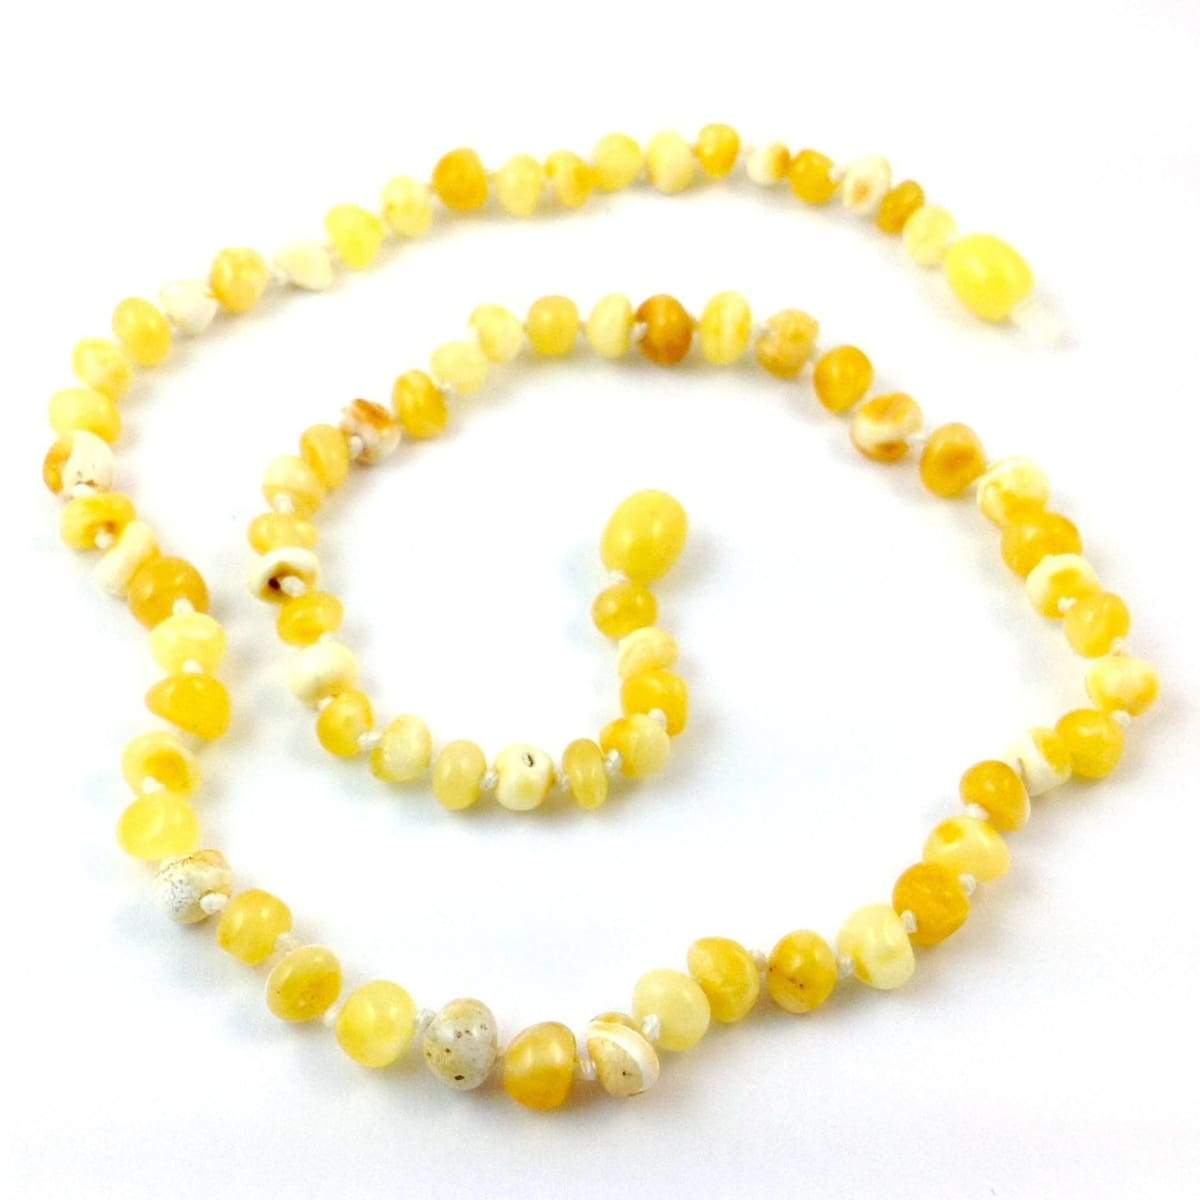 Baltic Amber Milk & Butter - 16 Necklace - Baltic Amber Jewelry